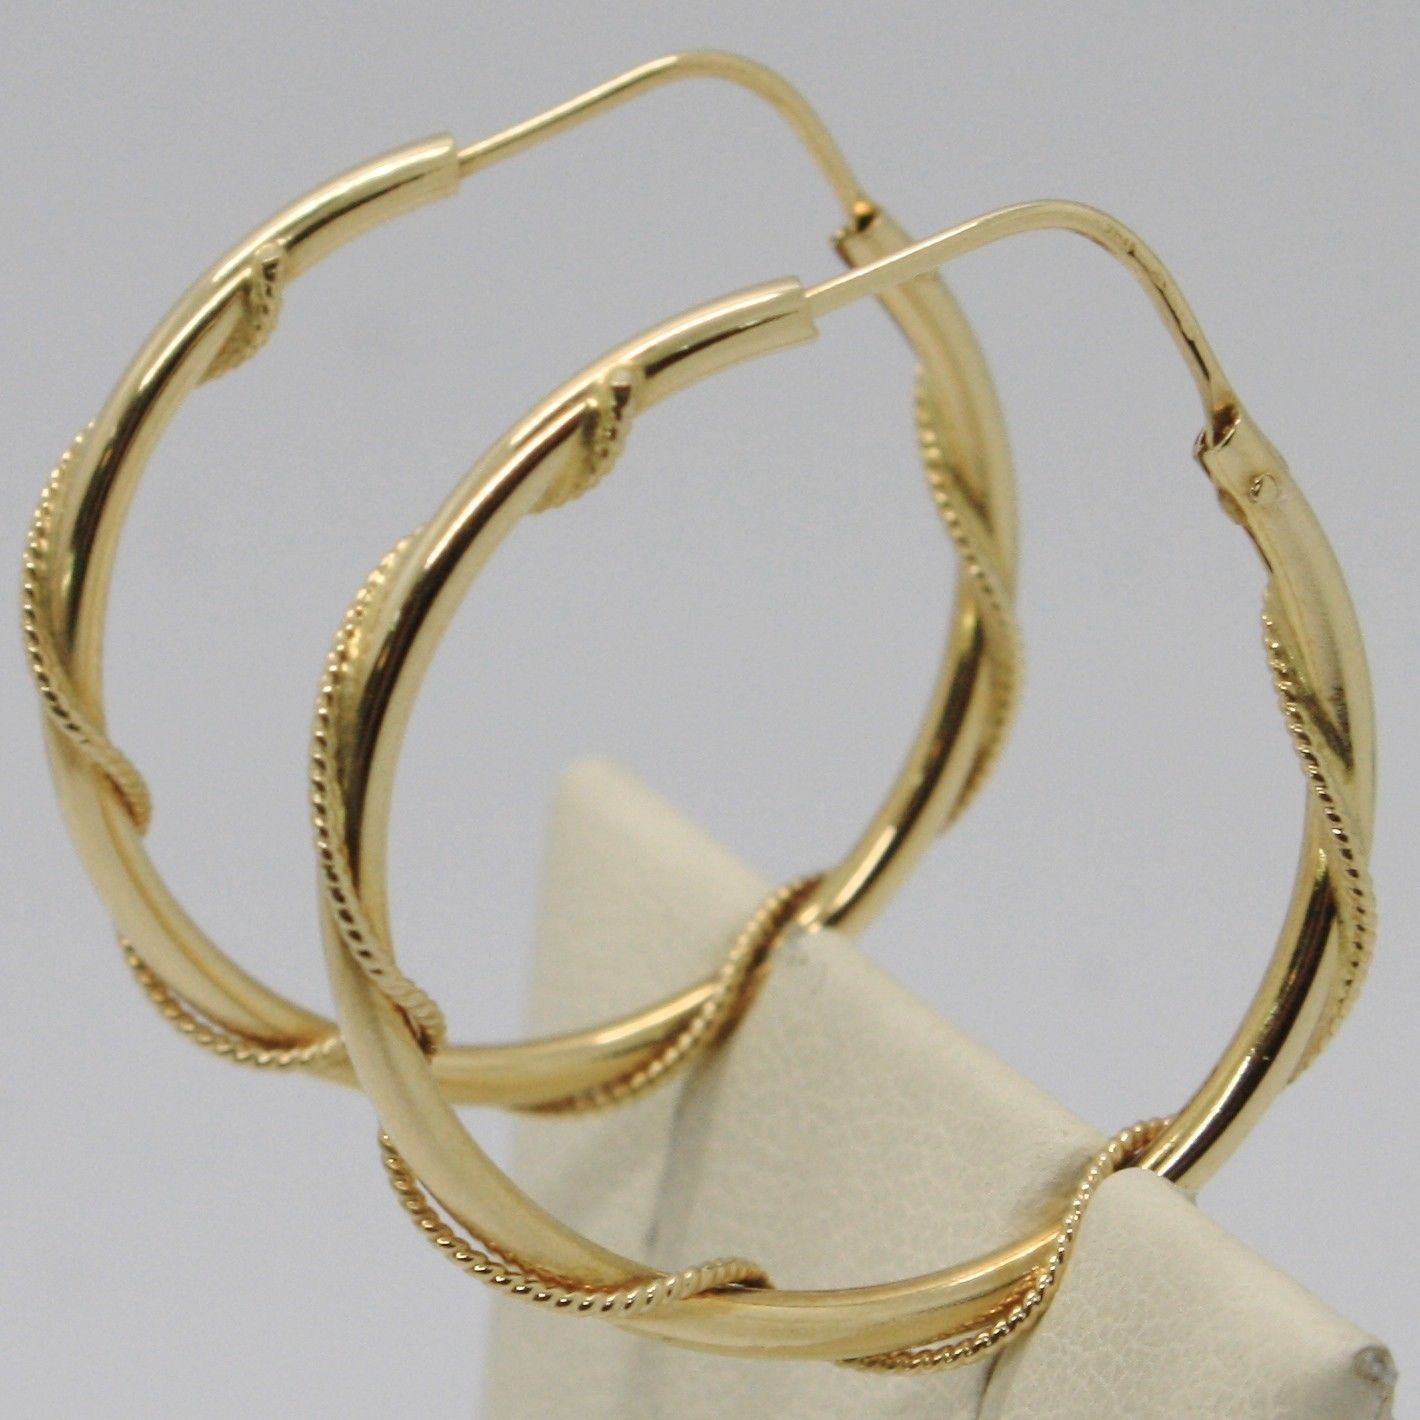 18K YELLOW GOLD PENDANT CIRCLE HOOPS DOUBLE TUBE TWISTED EARRINGS, MADE IN ITALY